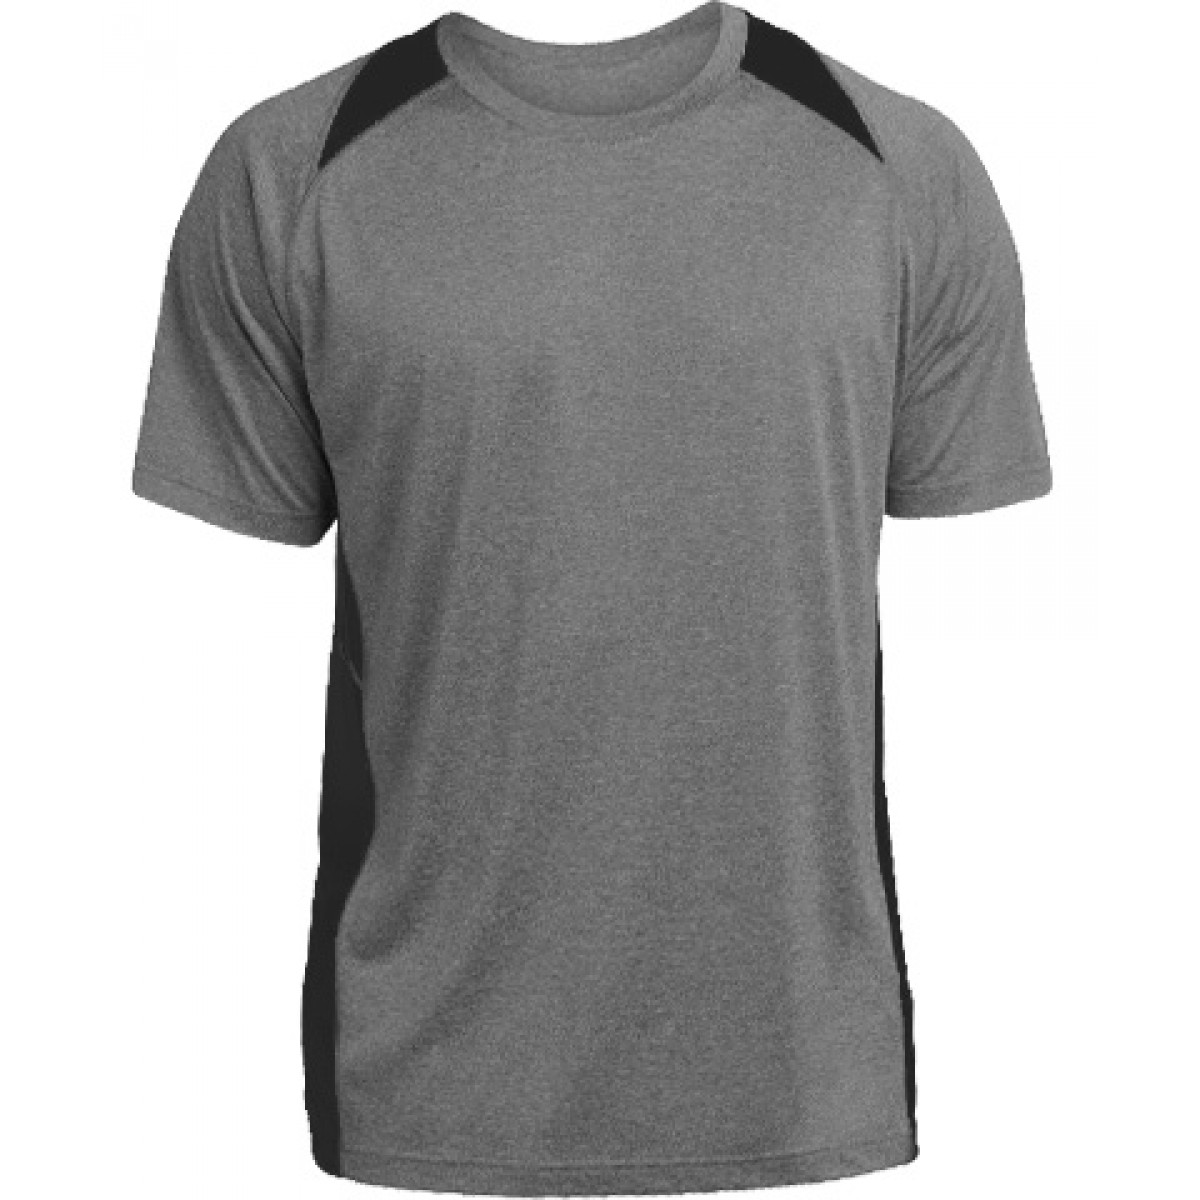 Heather Colorblock Contender™ Tee-Gray/Black-L